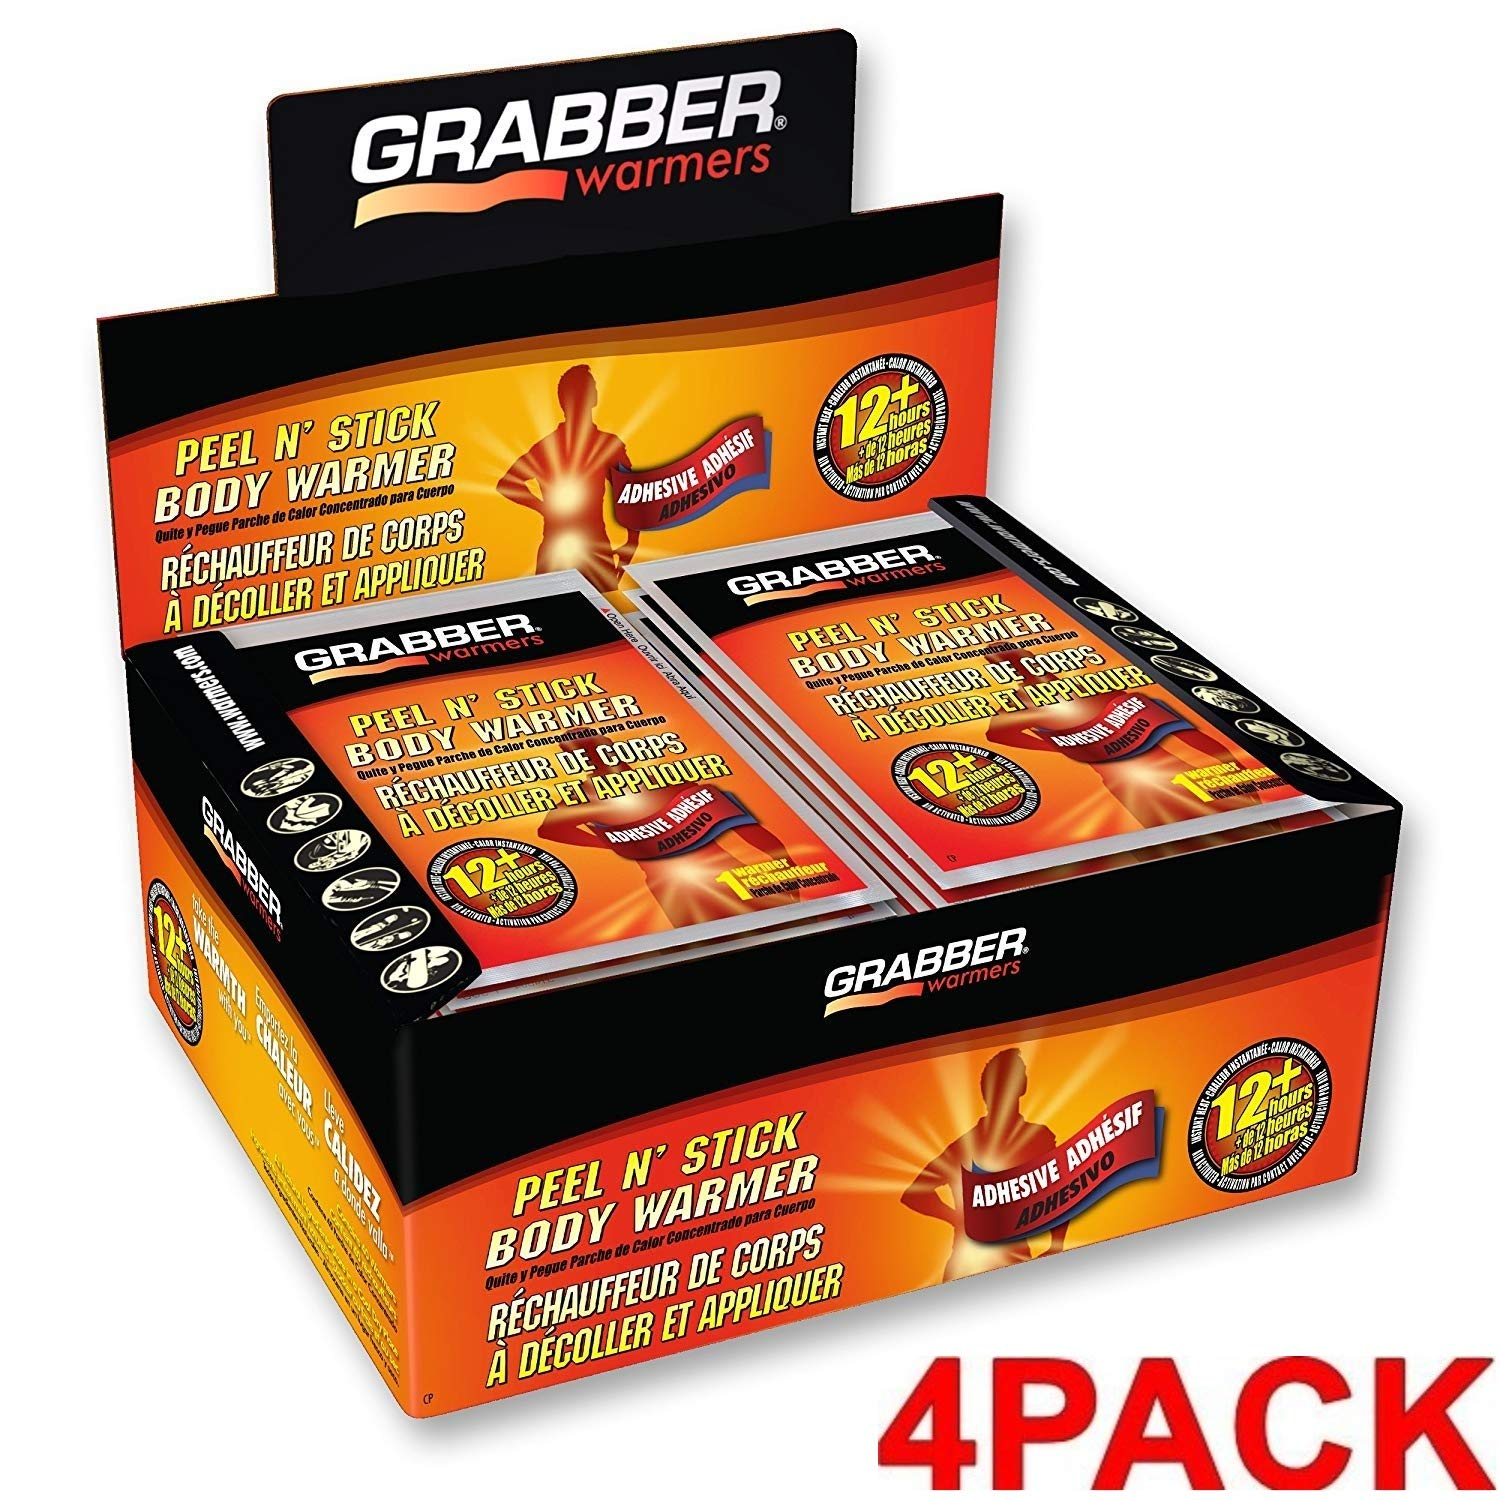 GRABBER WARMERS Peel N' Stick Body Warmers (4 Pack 40 Count) by GRABBER WARMERS